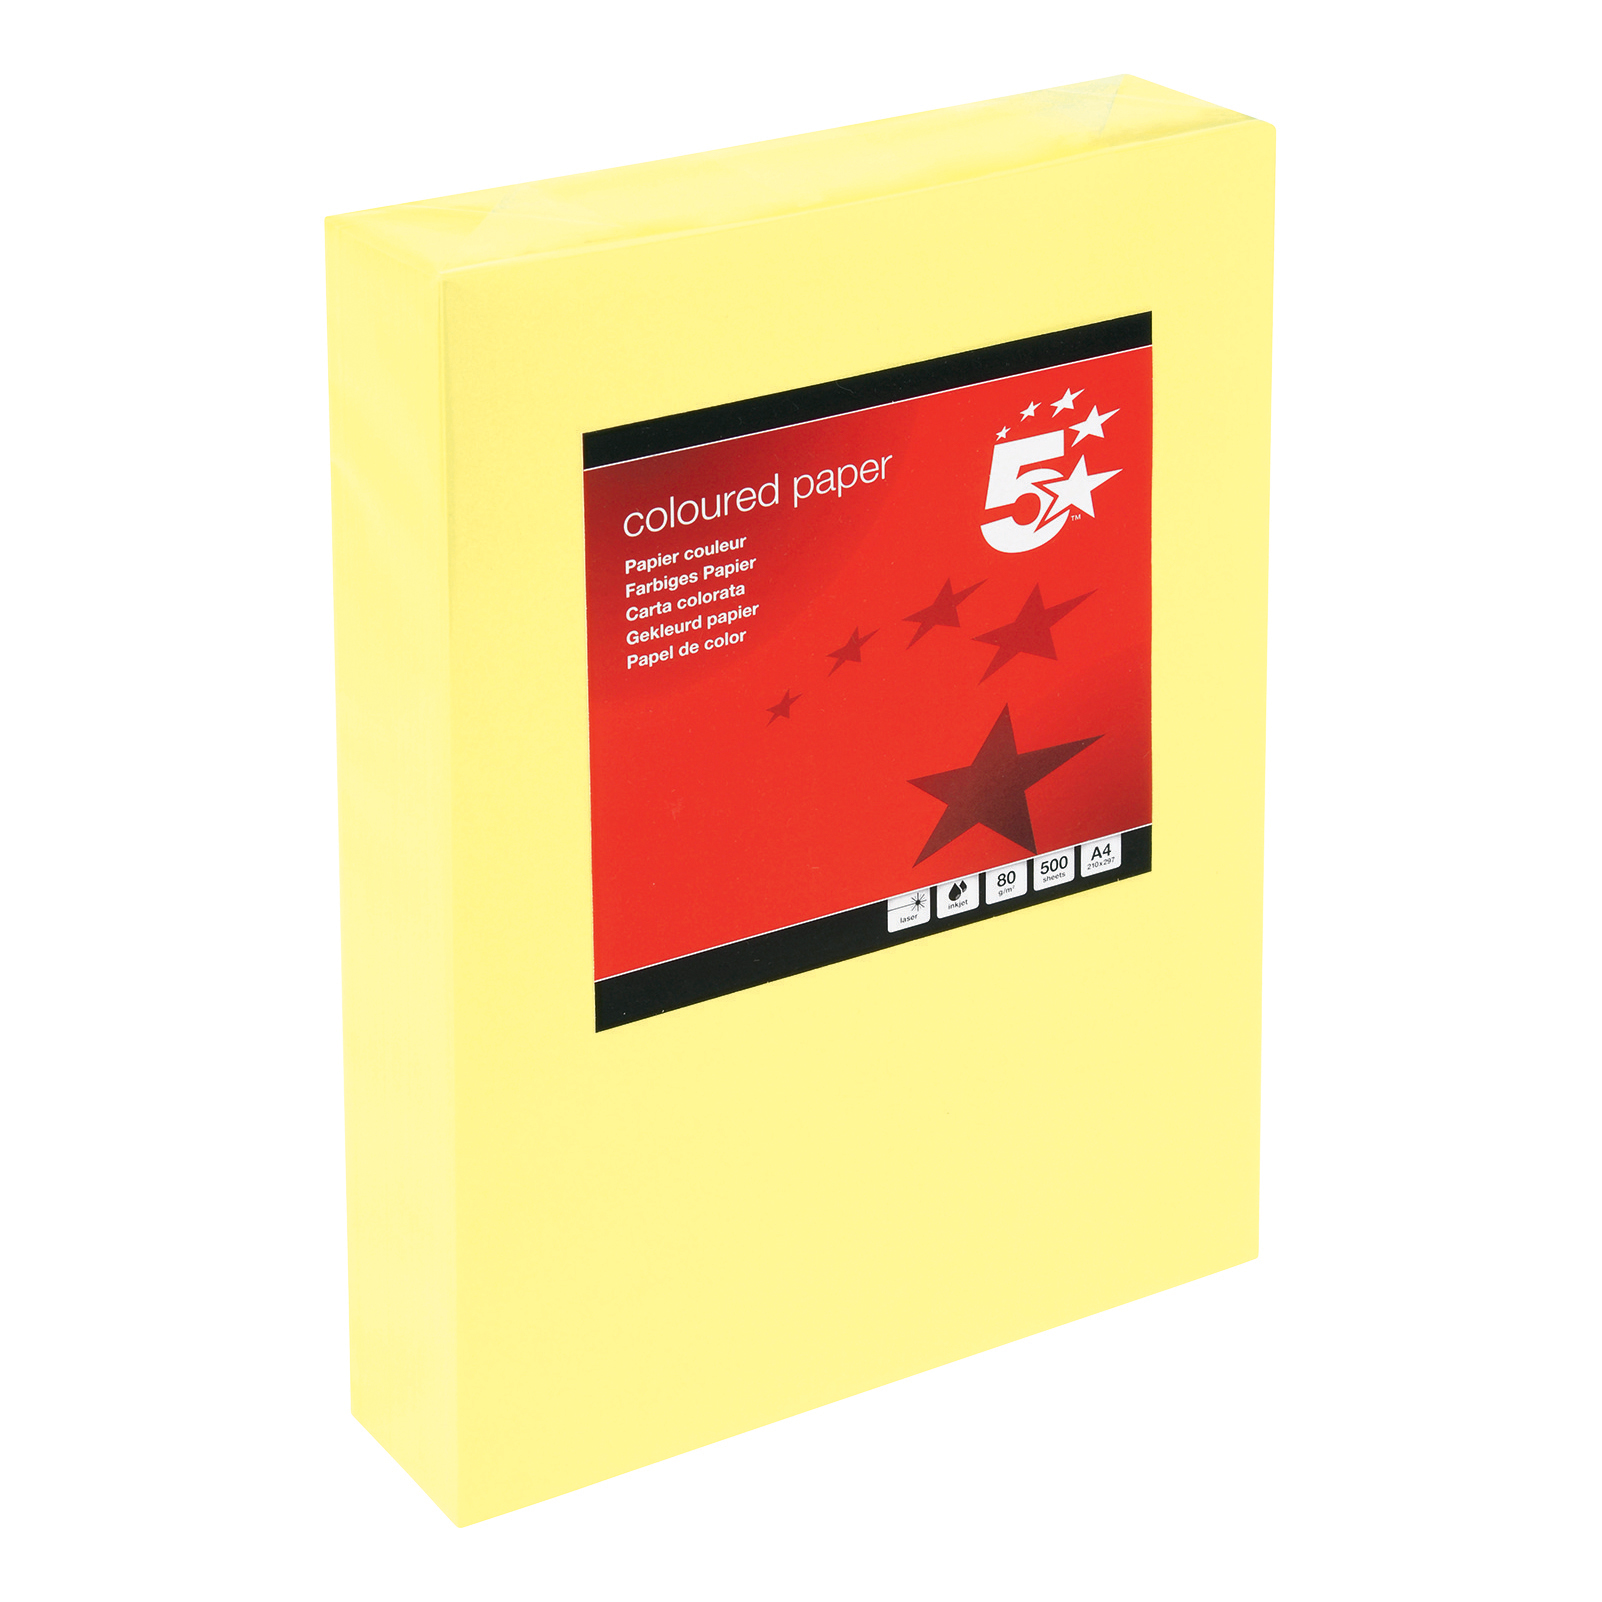 A4 5 Star Office Coloured Copier Paper Multifunctional Ream-Wrapped 80gsm A4 Medium Yellow 500 Sheets